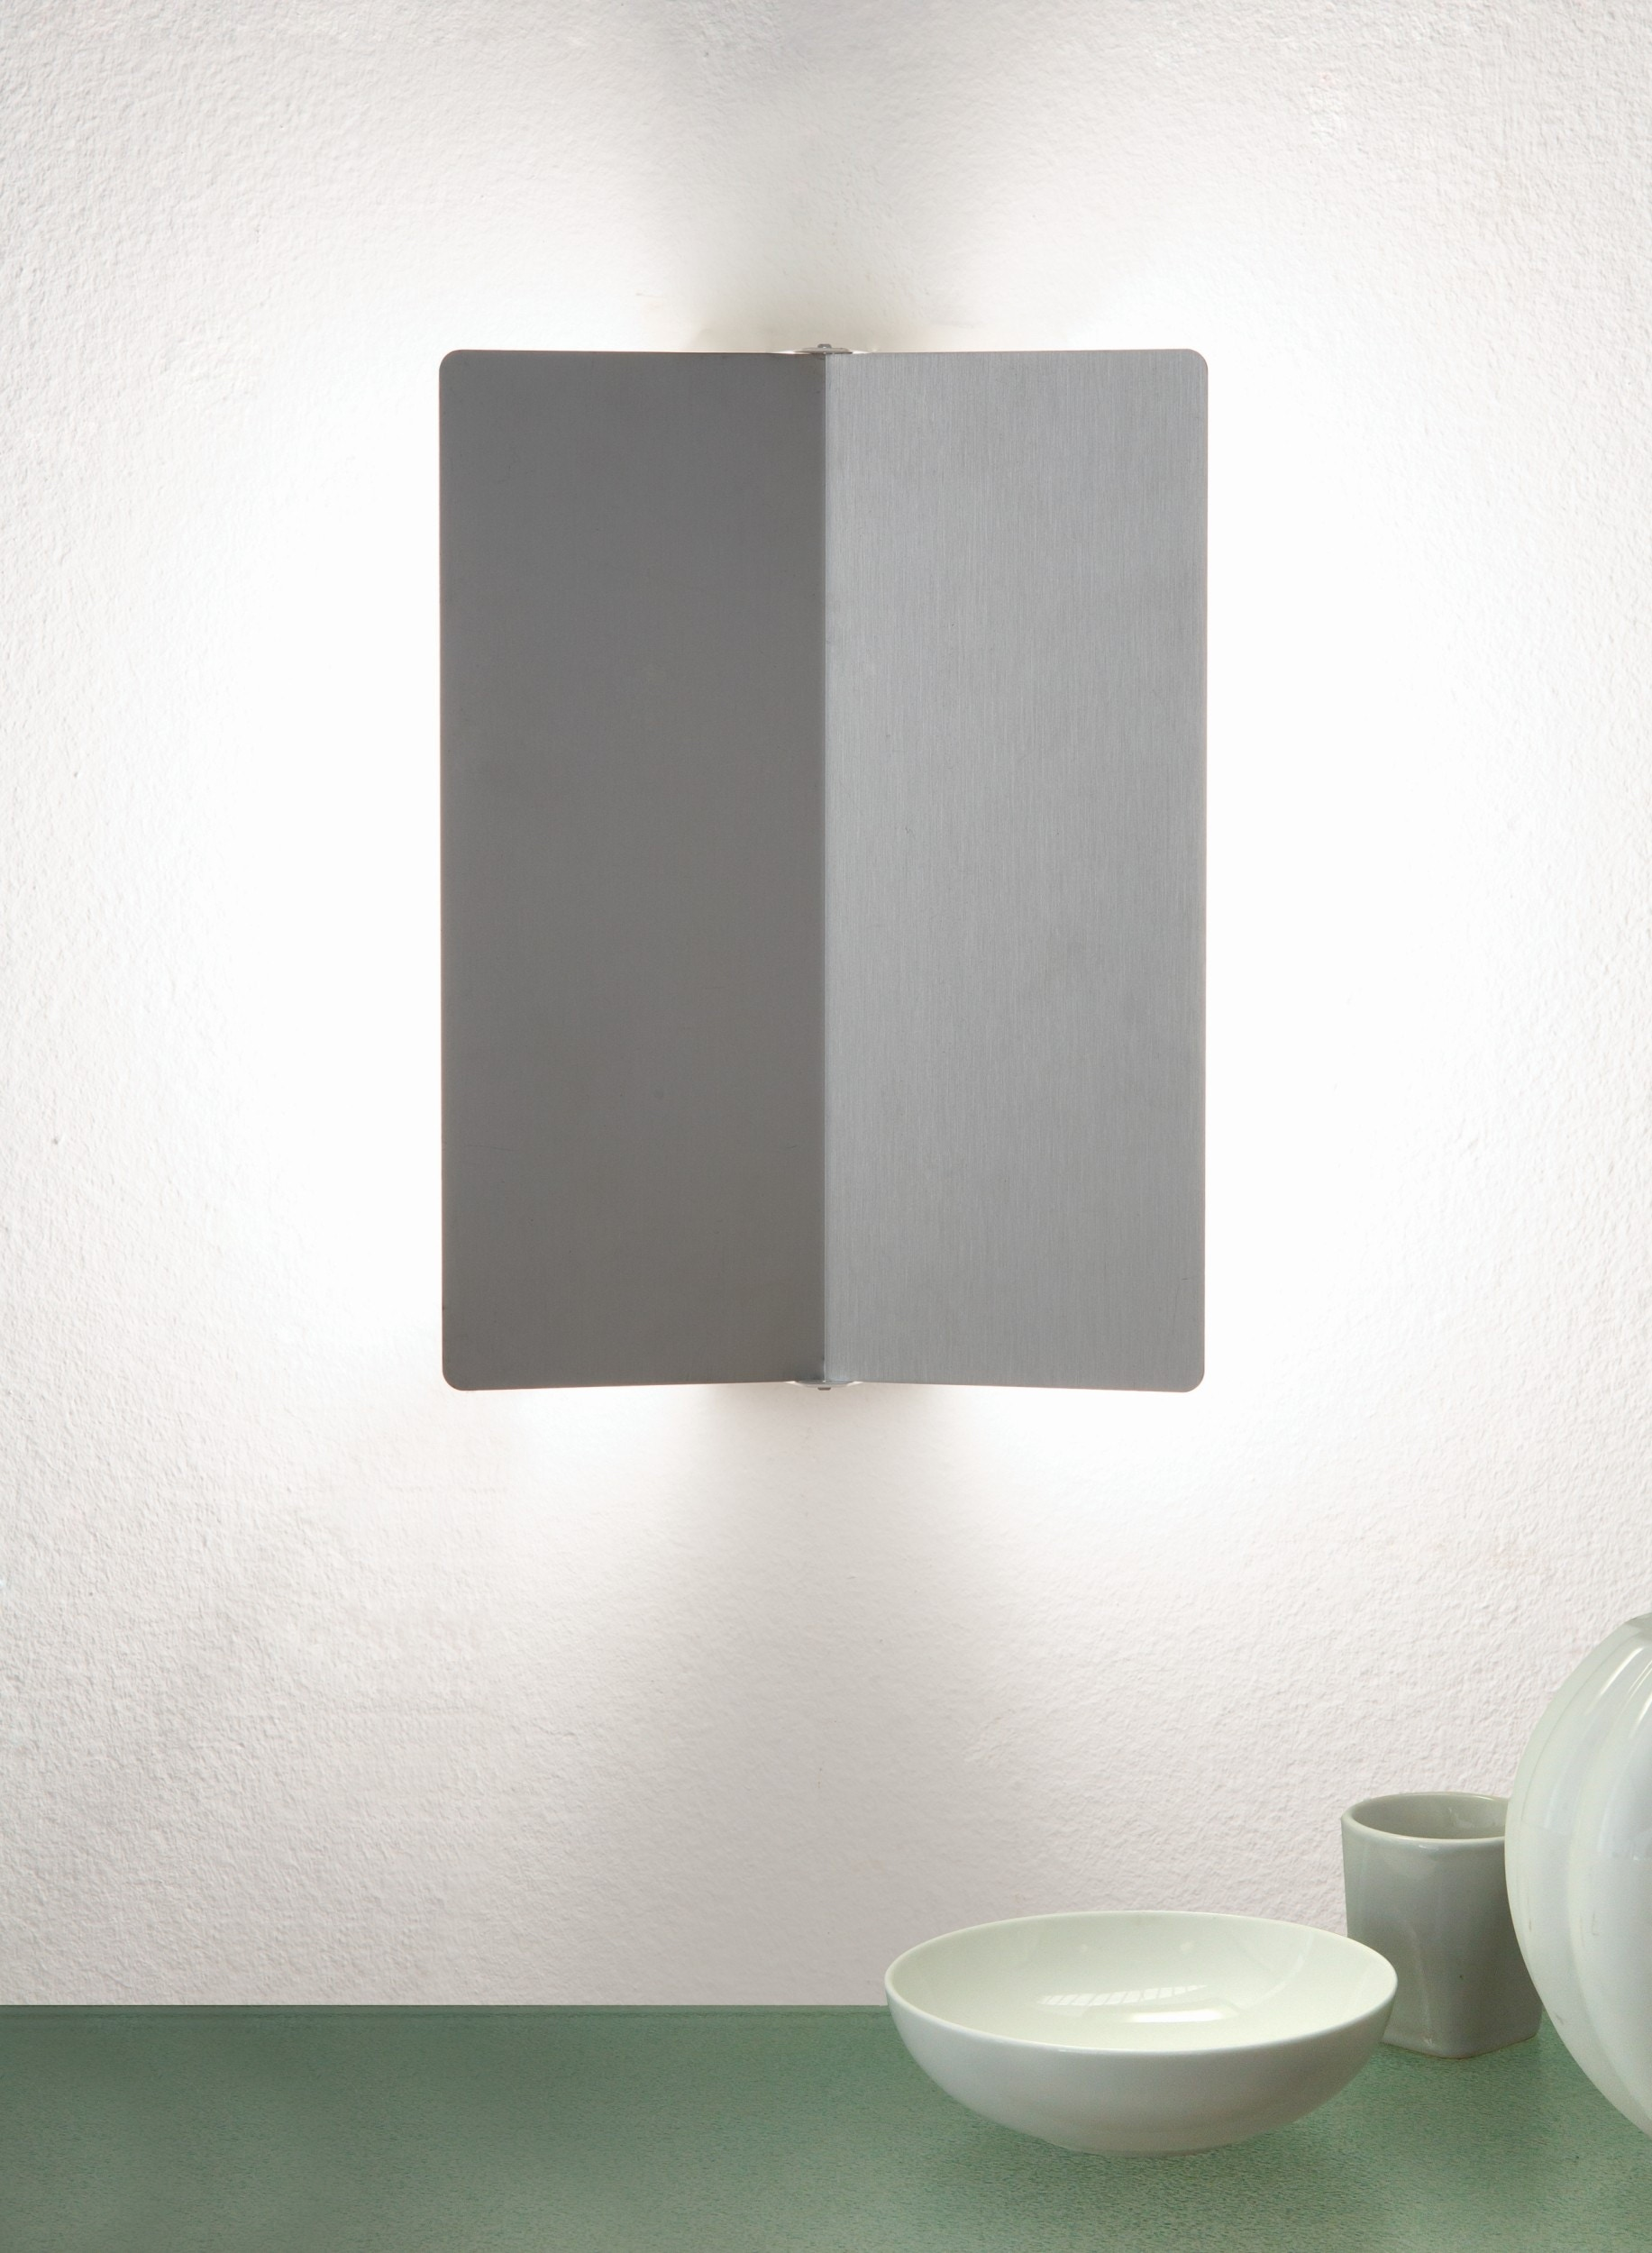 Nemo Italianaluce Applique A Volet Pivotant Plie LED Wall Lamp